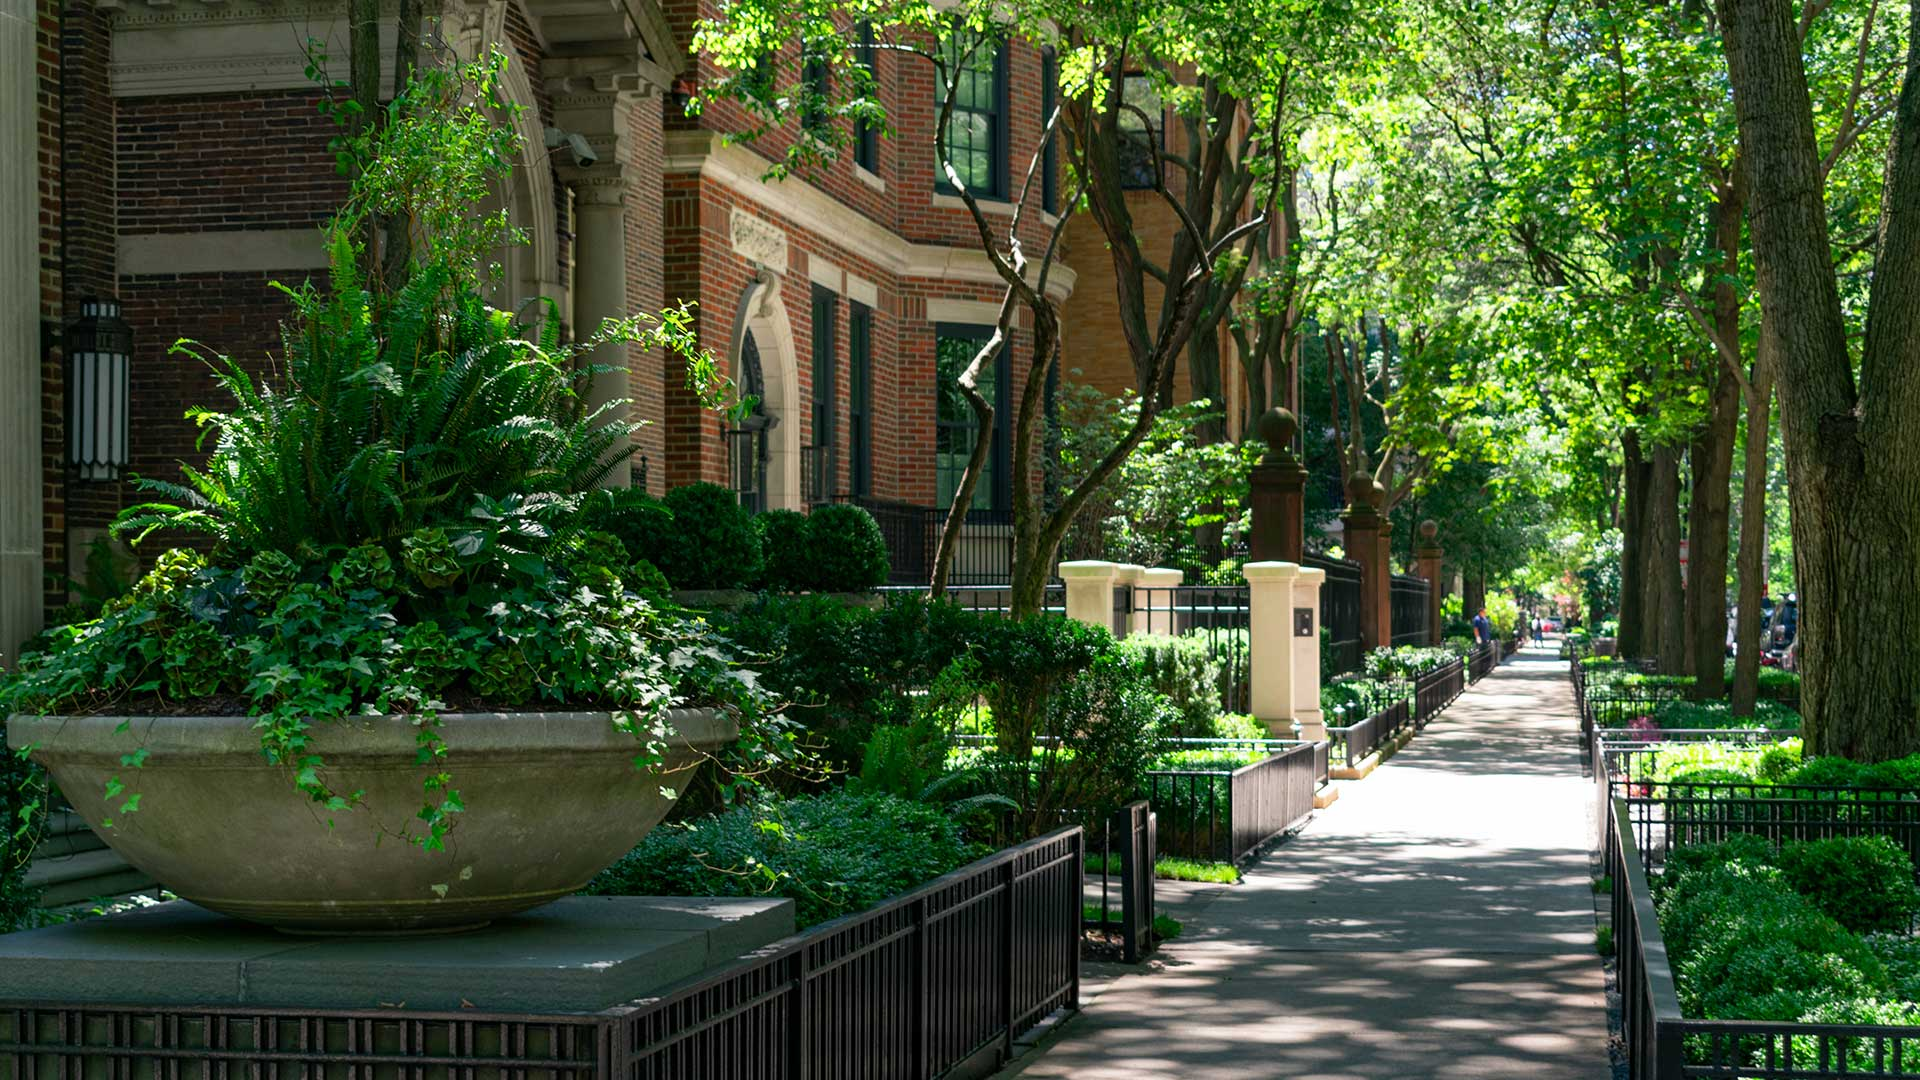 Looking down a sidewalk in the Gold Coast. Walkup buildings line the left side with green plants and trees all around.